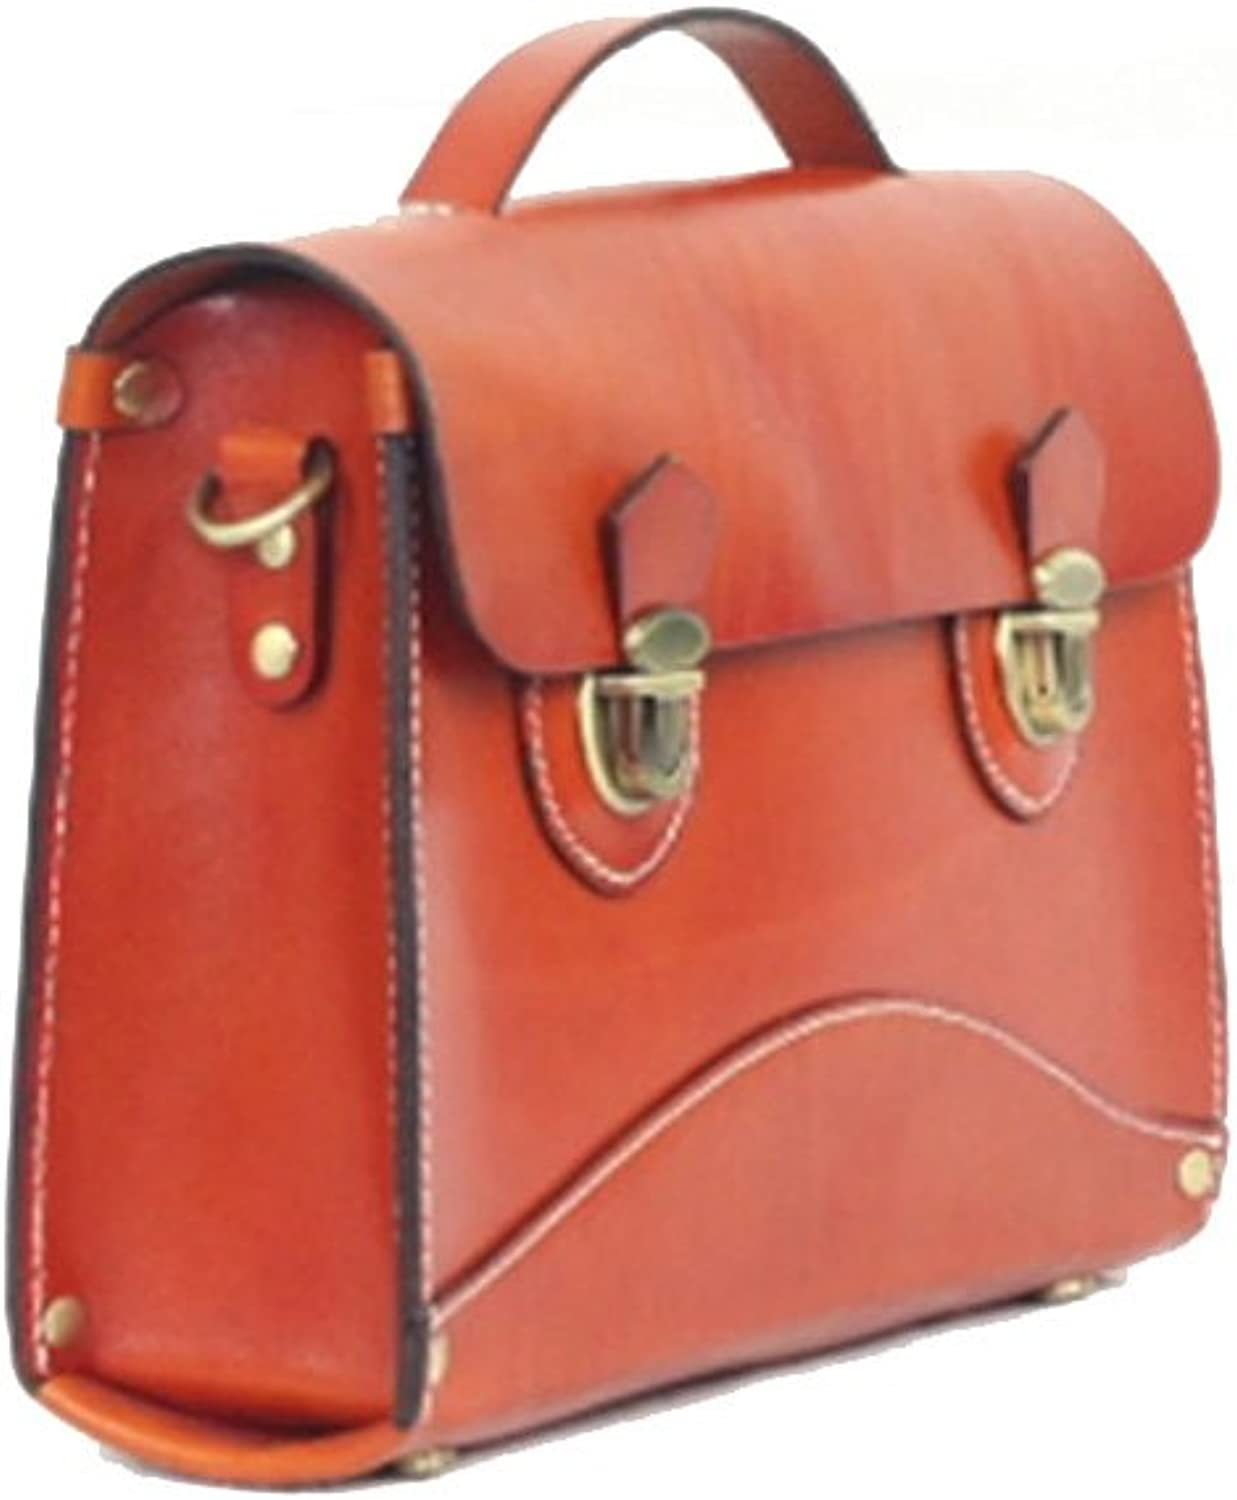 HIFISH HB100333 First Layer Of Leather OL Commuter Handbag,Box Commuter Bag